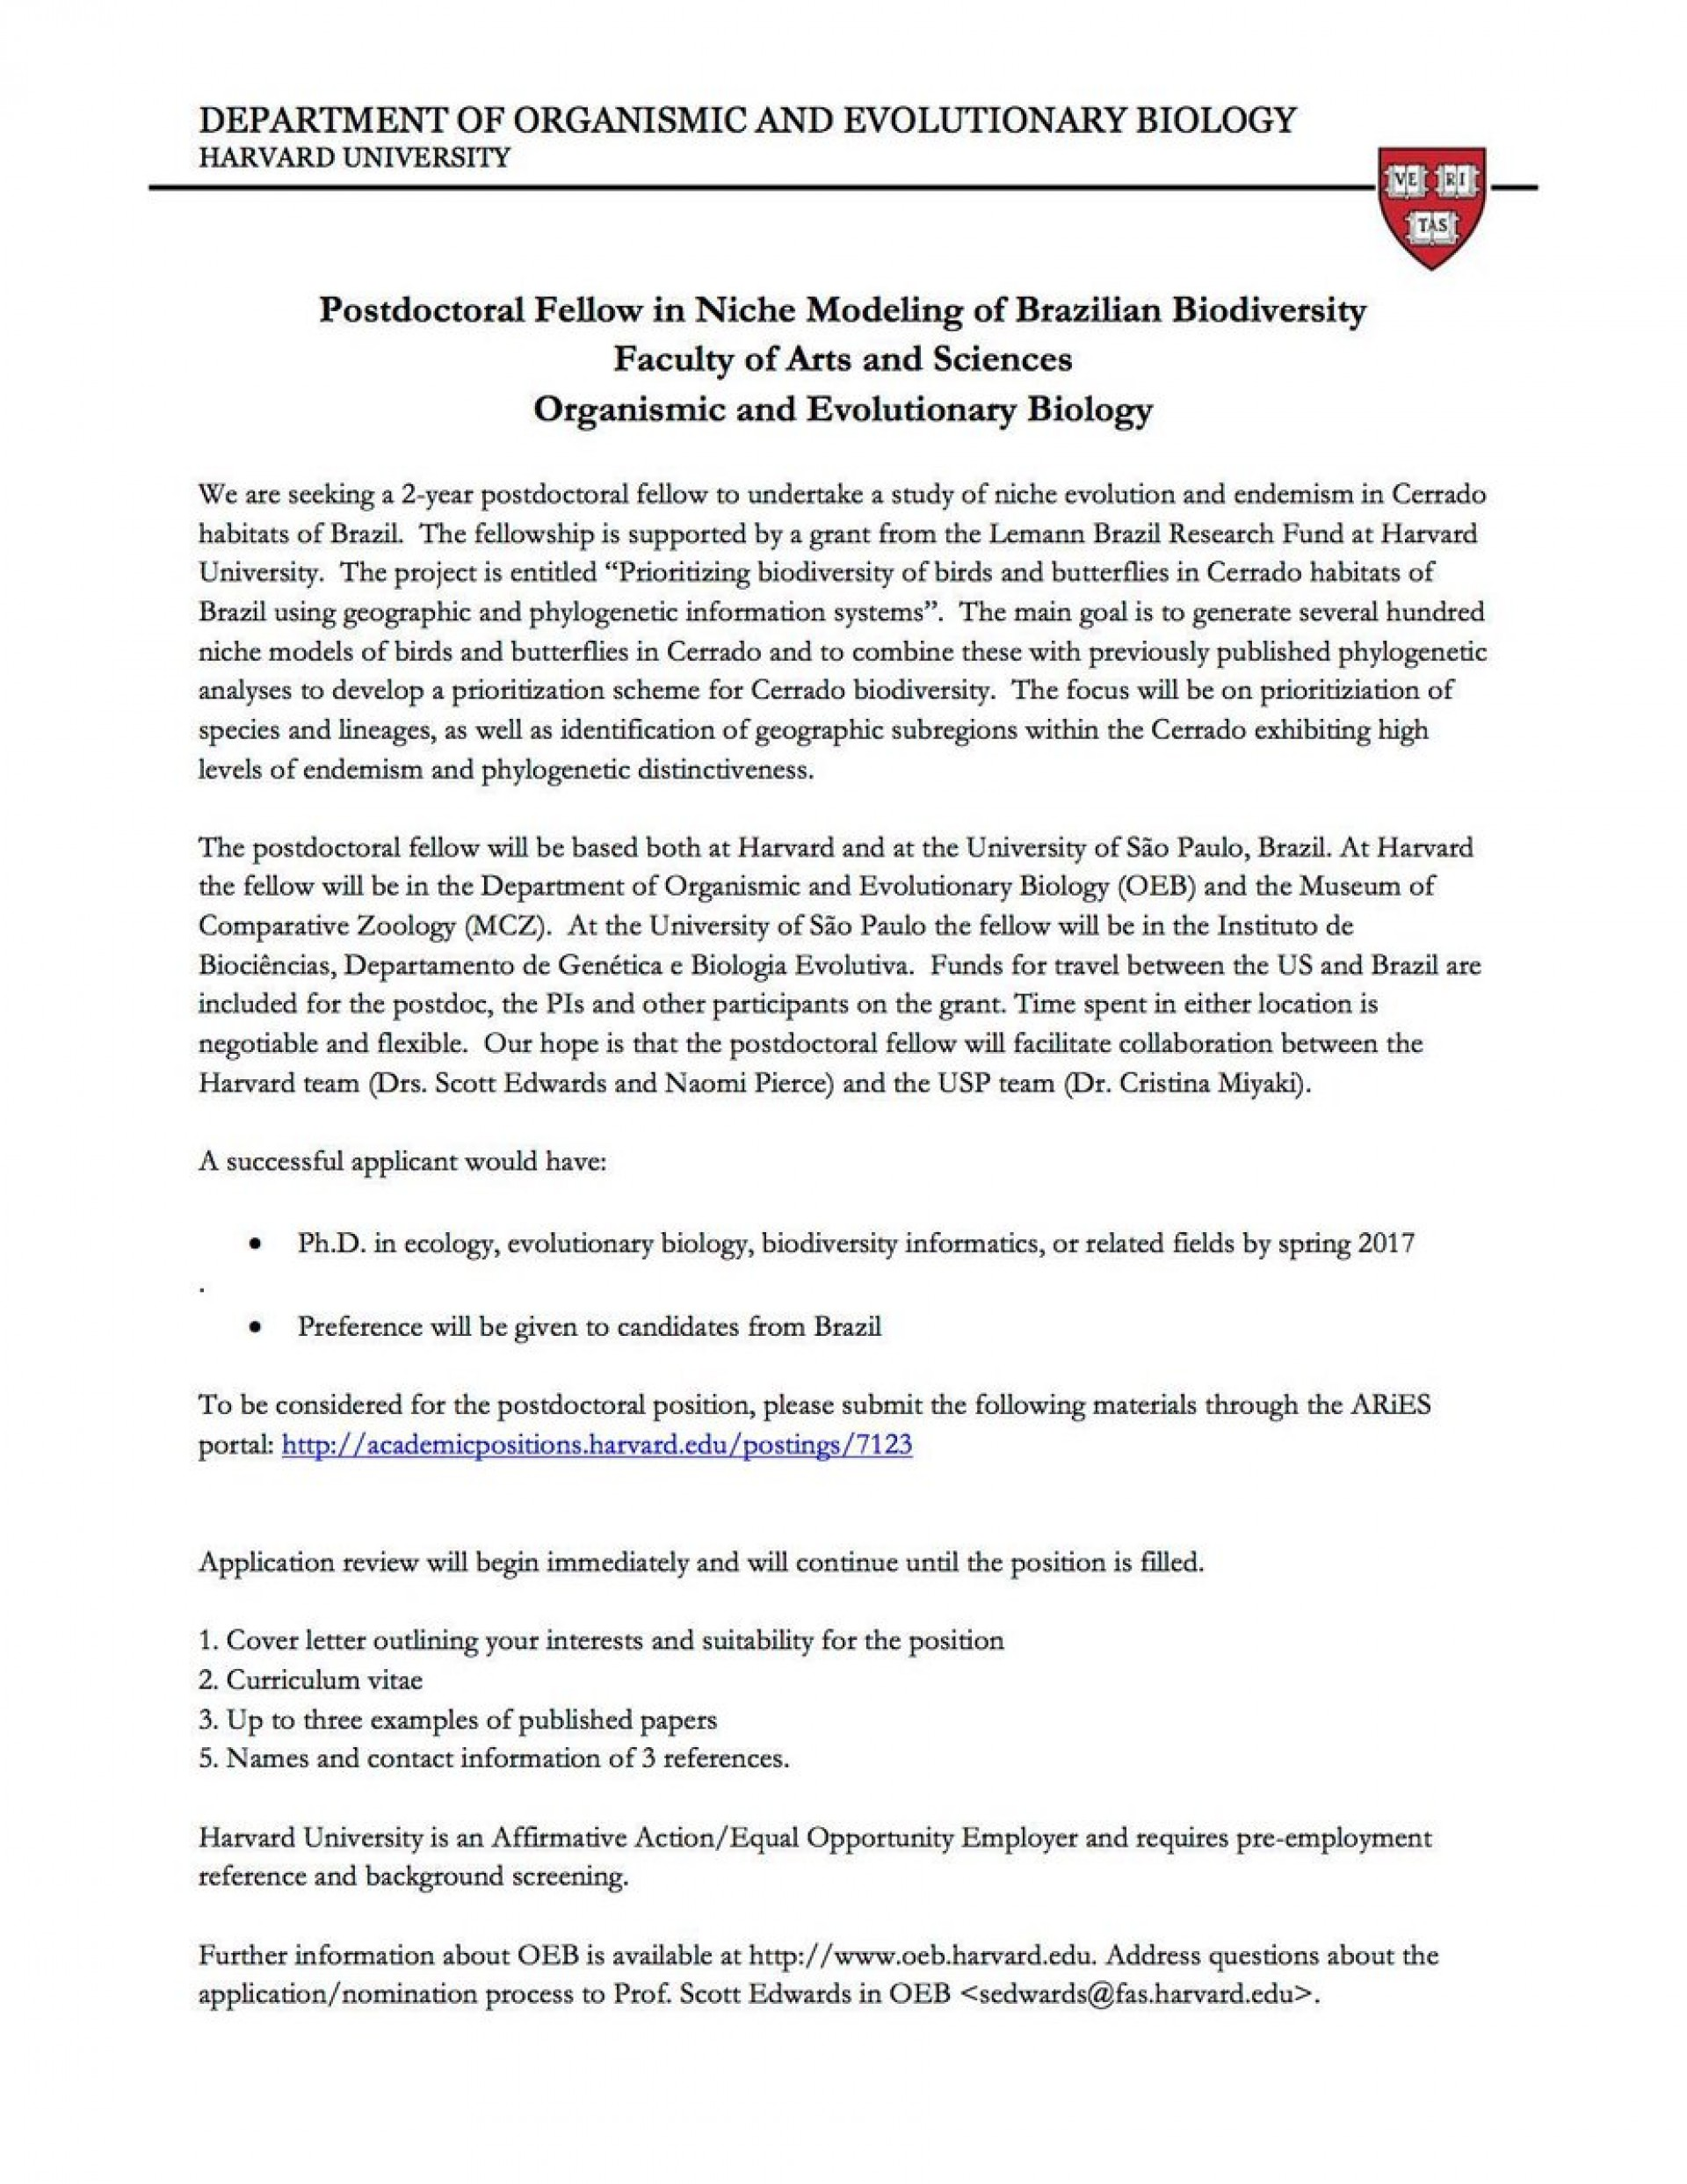 017 Cs7fb8bxgaajzro What Is Proposal Essay Top A Argument The Purpose Of 1920